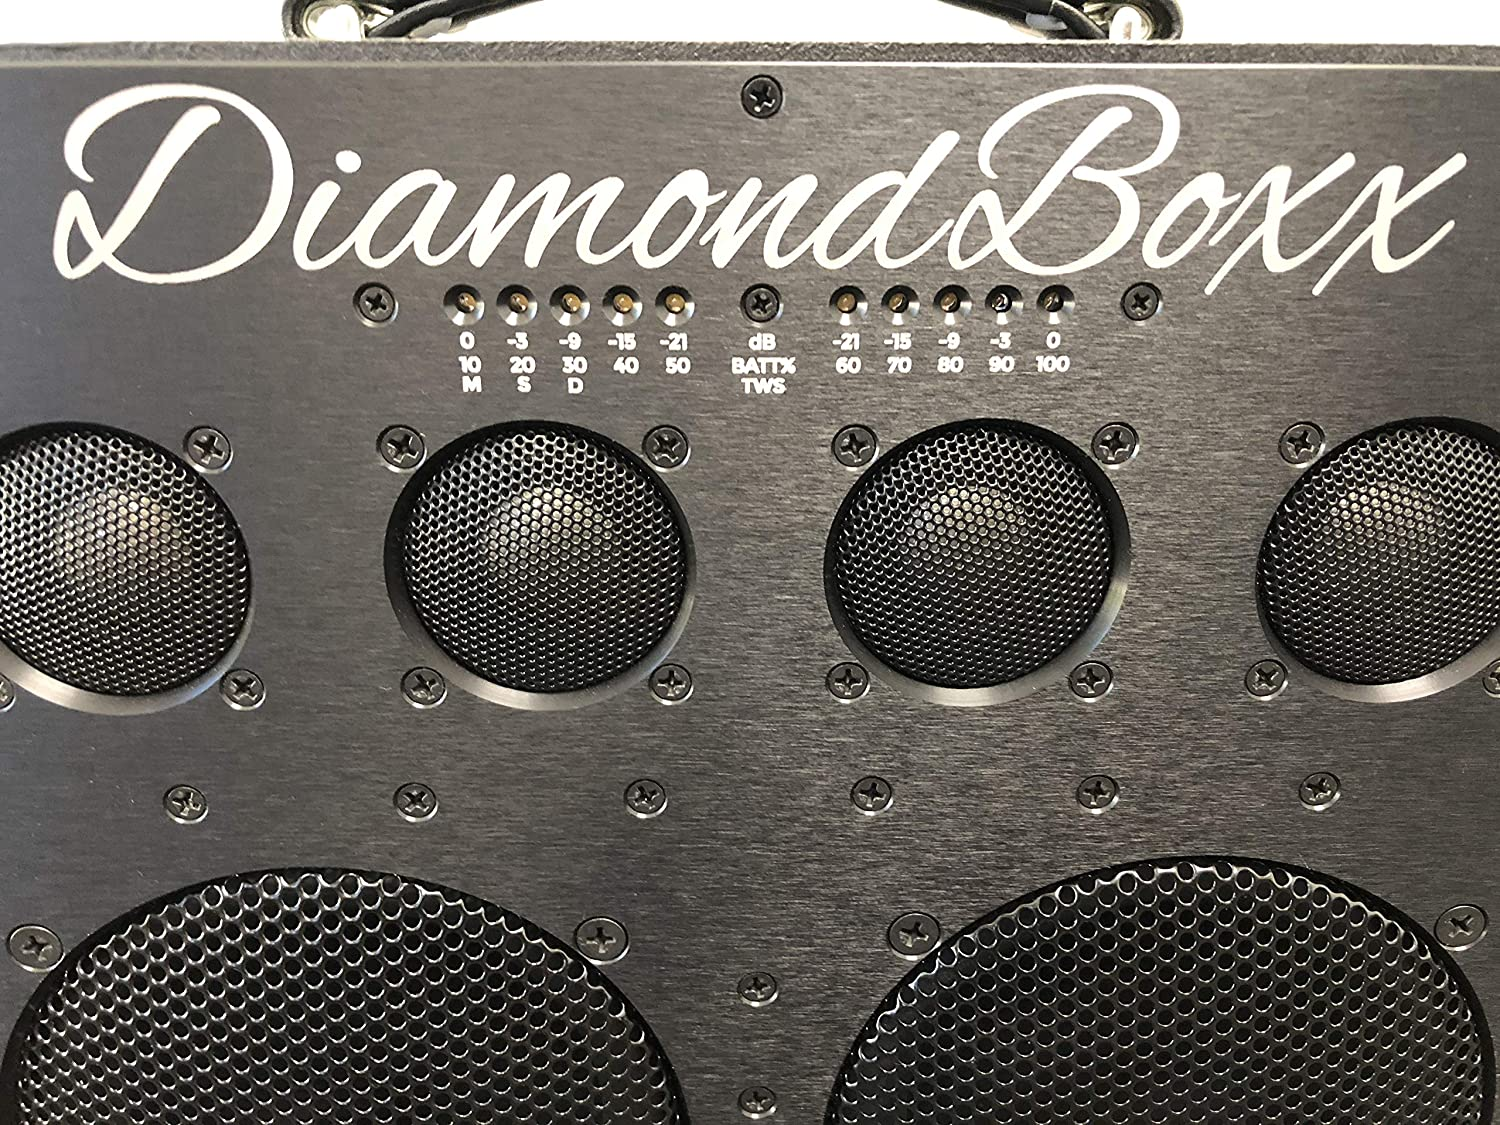 Diamond Box Xl >> Diamondboxx Model Xl2 Black The Biggest Bass In Wireless Audio Portable Bluetooth Speaker Loud Clear With 1000 Watts Output 20 Hours Per Charge 12